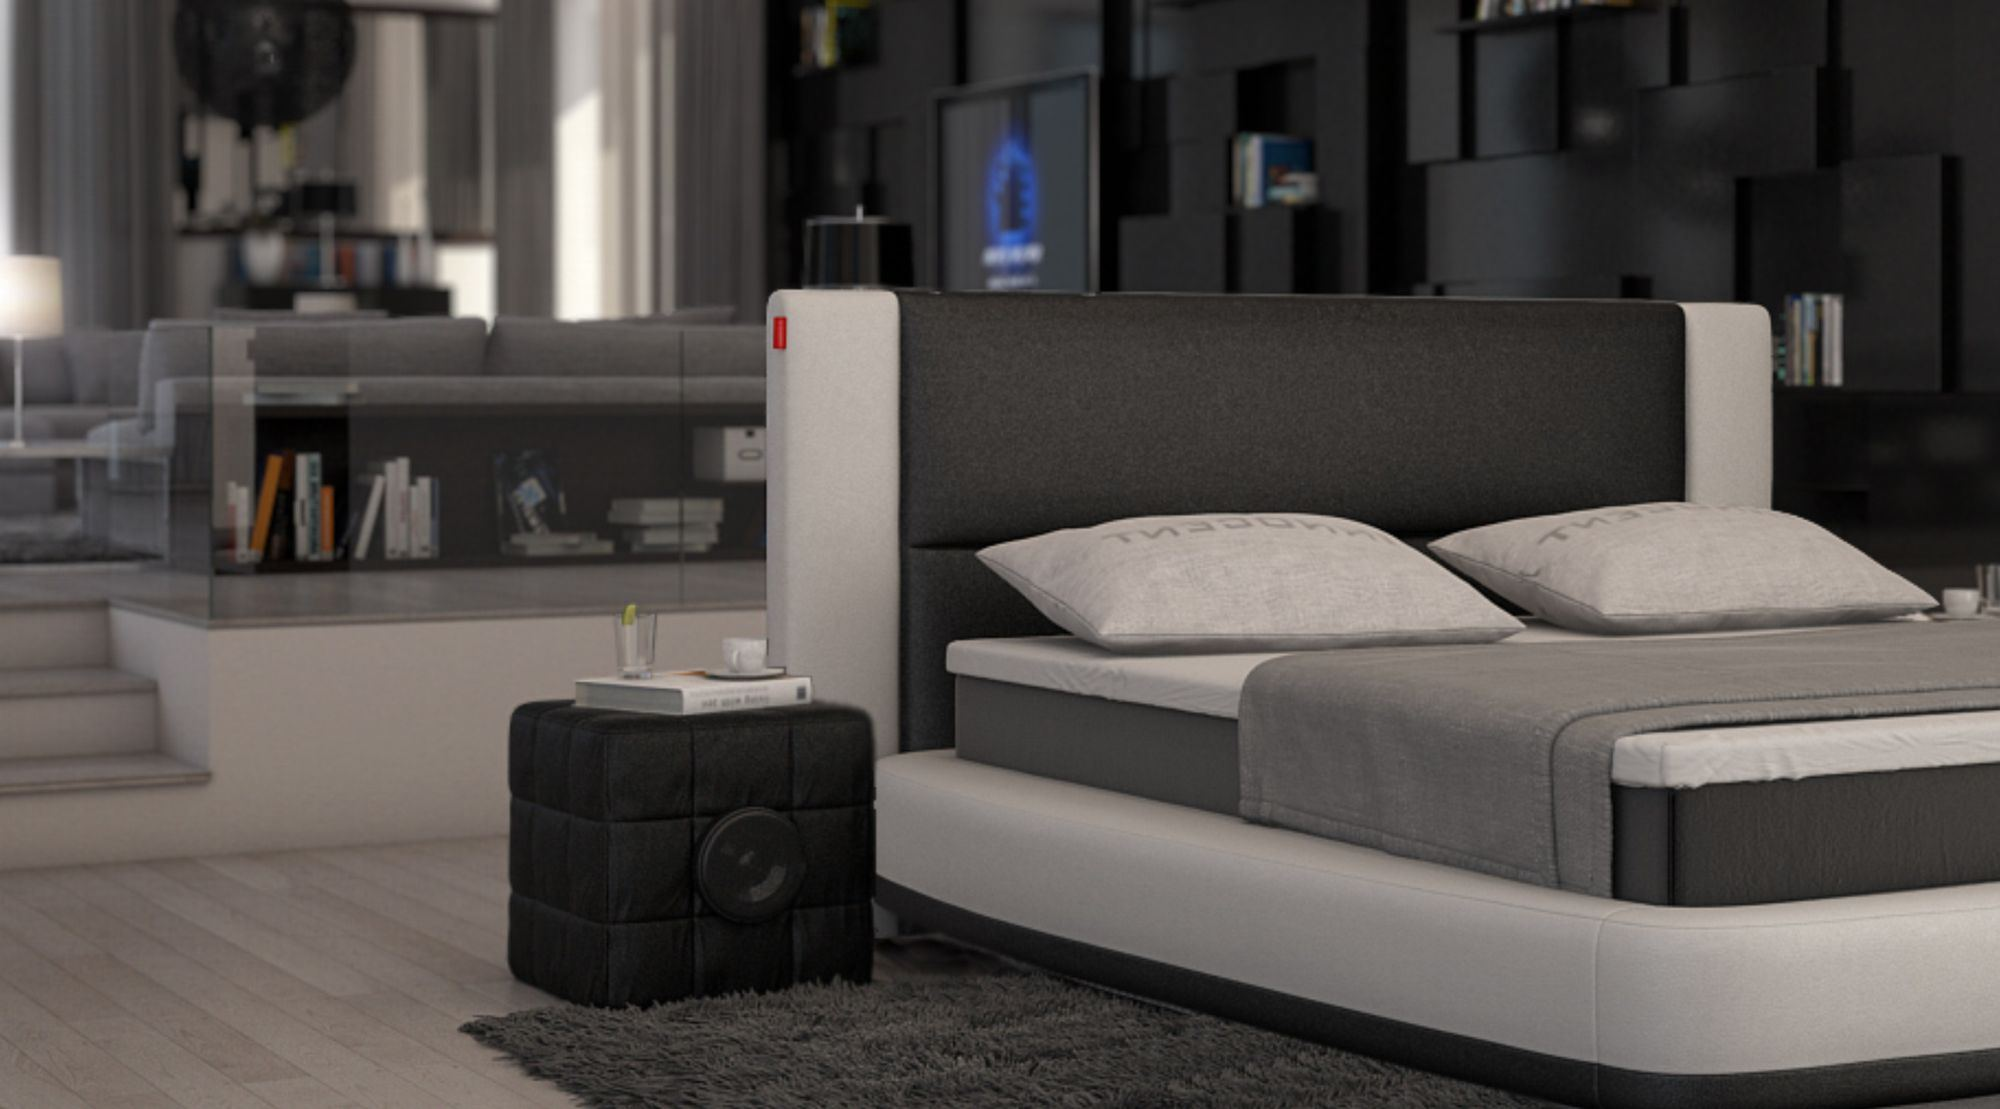 boxspringbett aquila design polsterbett designerbett zweifarbig ebay. Black Bedroom Furniture Sets. Home Design Ideas